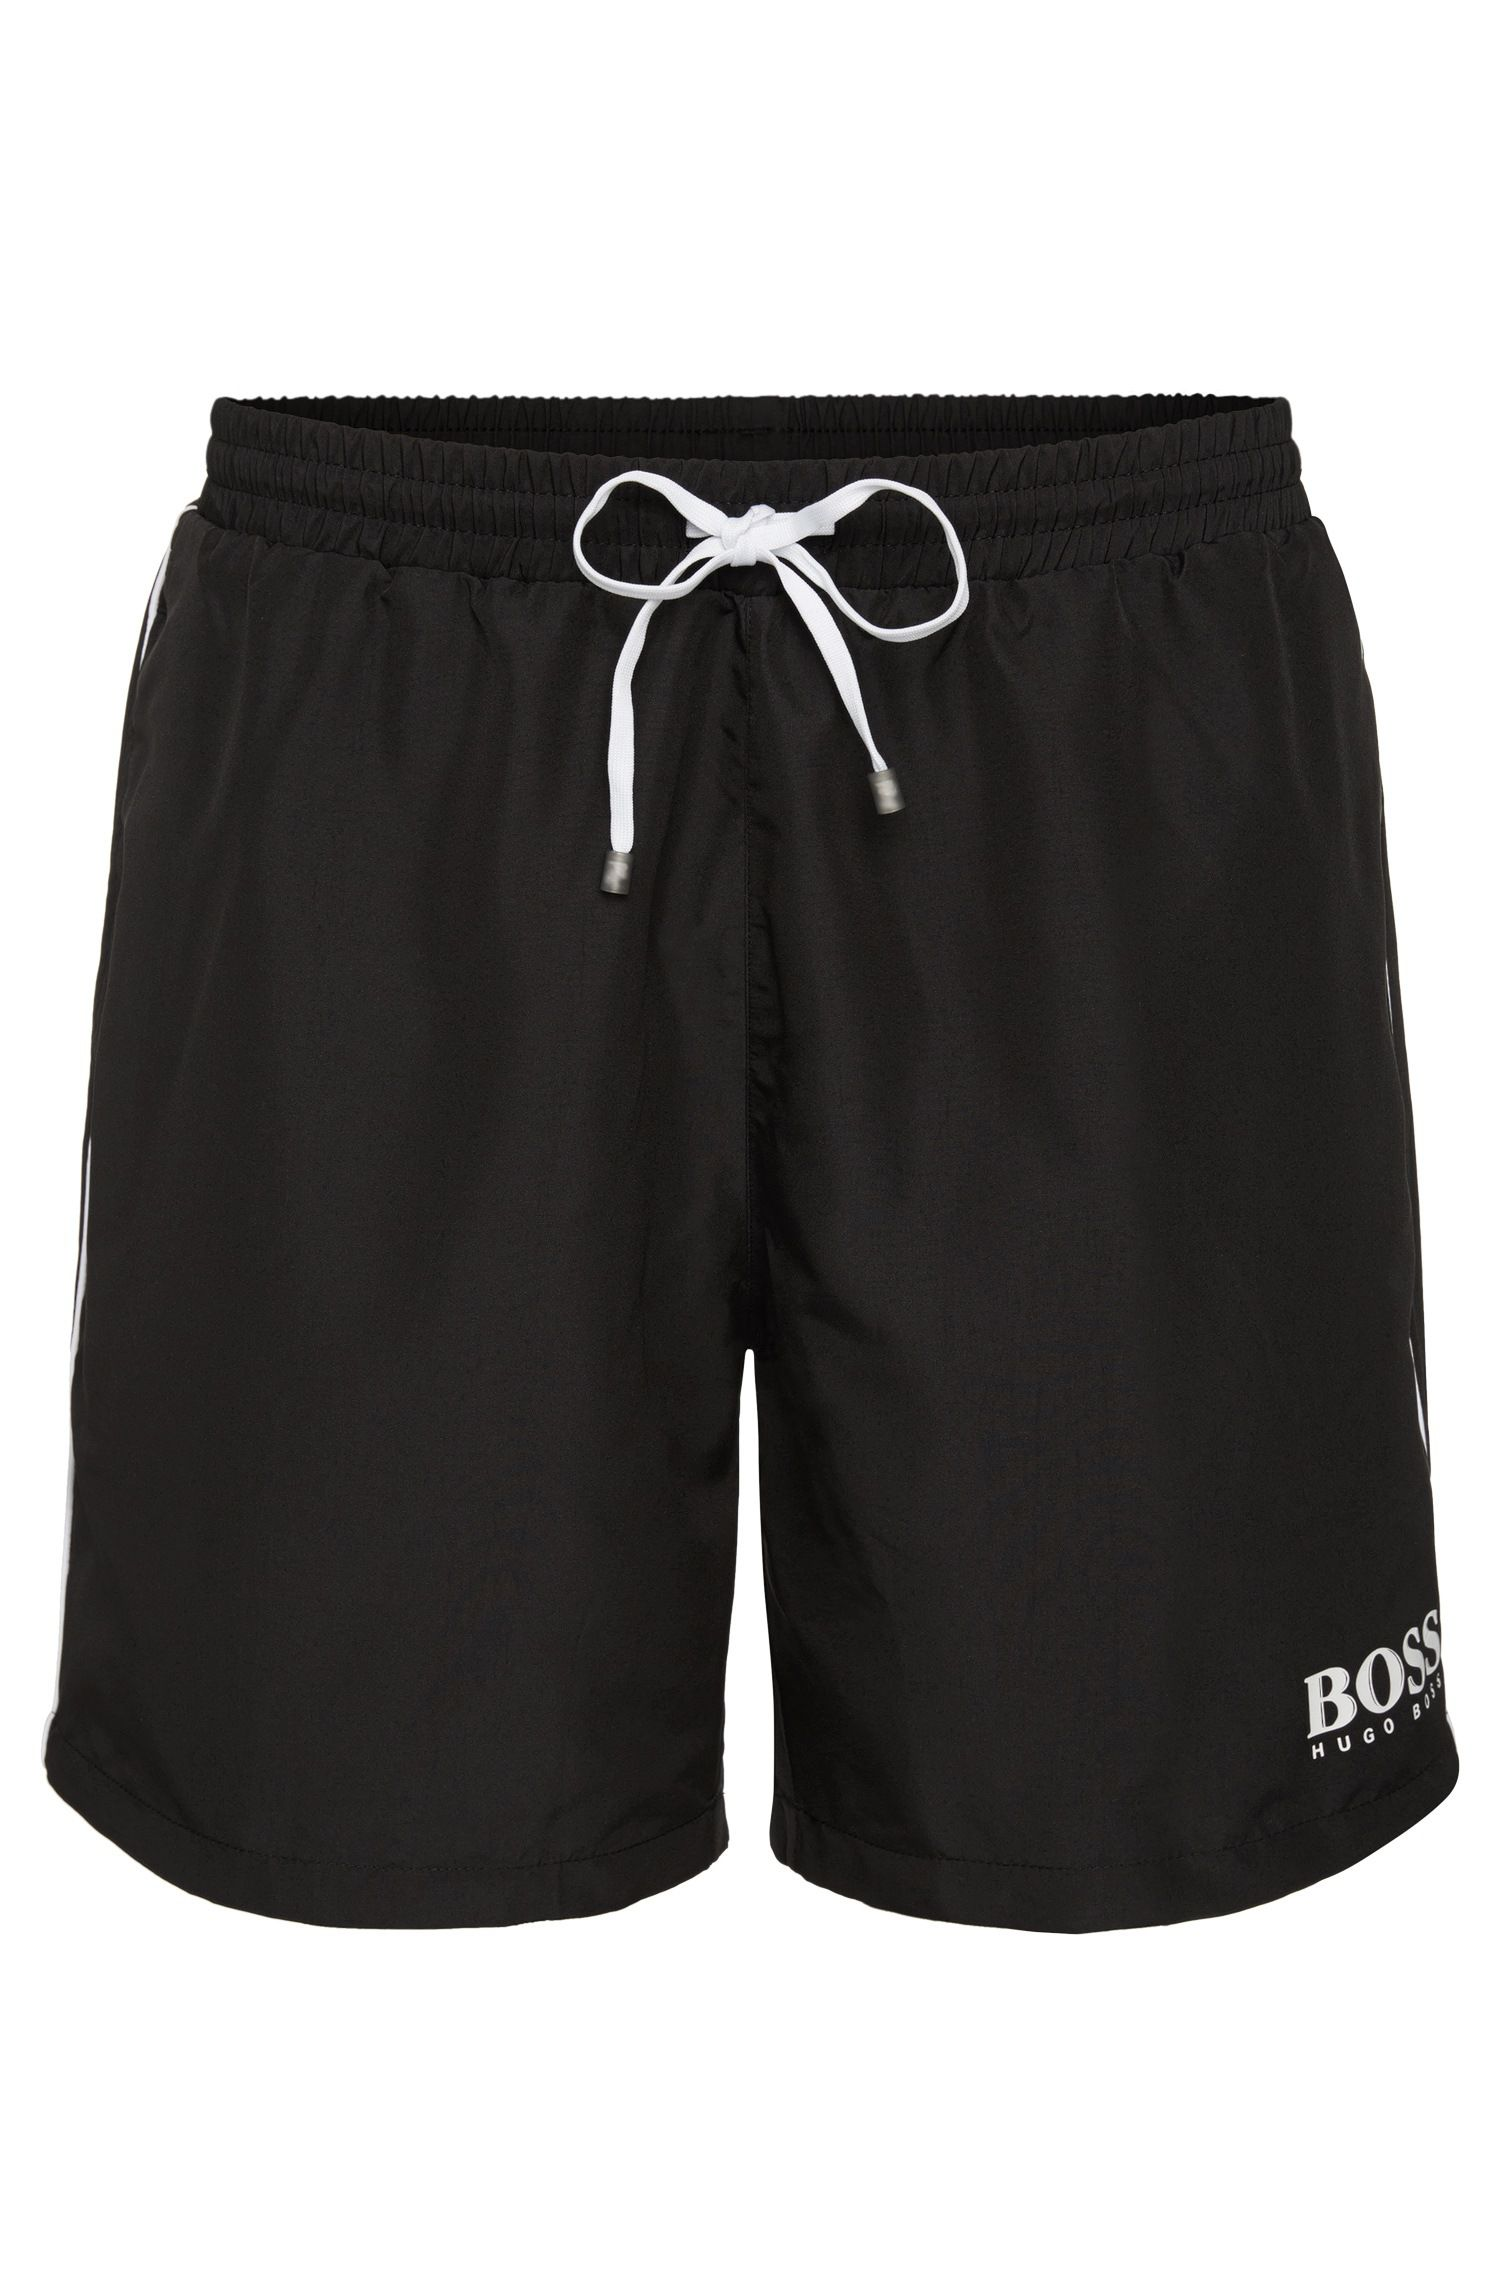 Drawstring swim shorts with logo detail